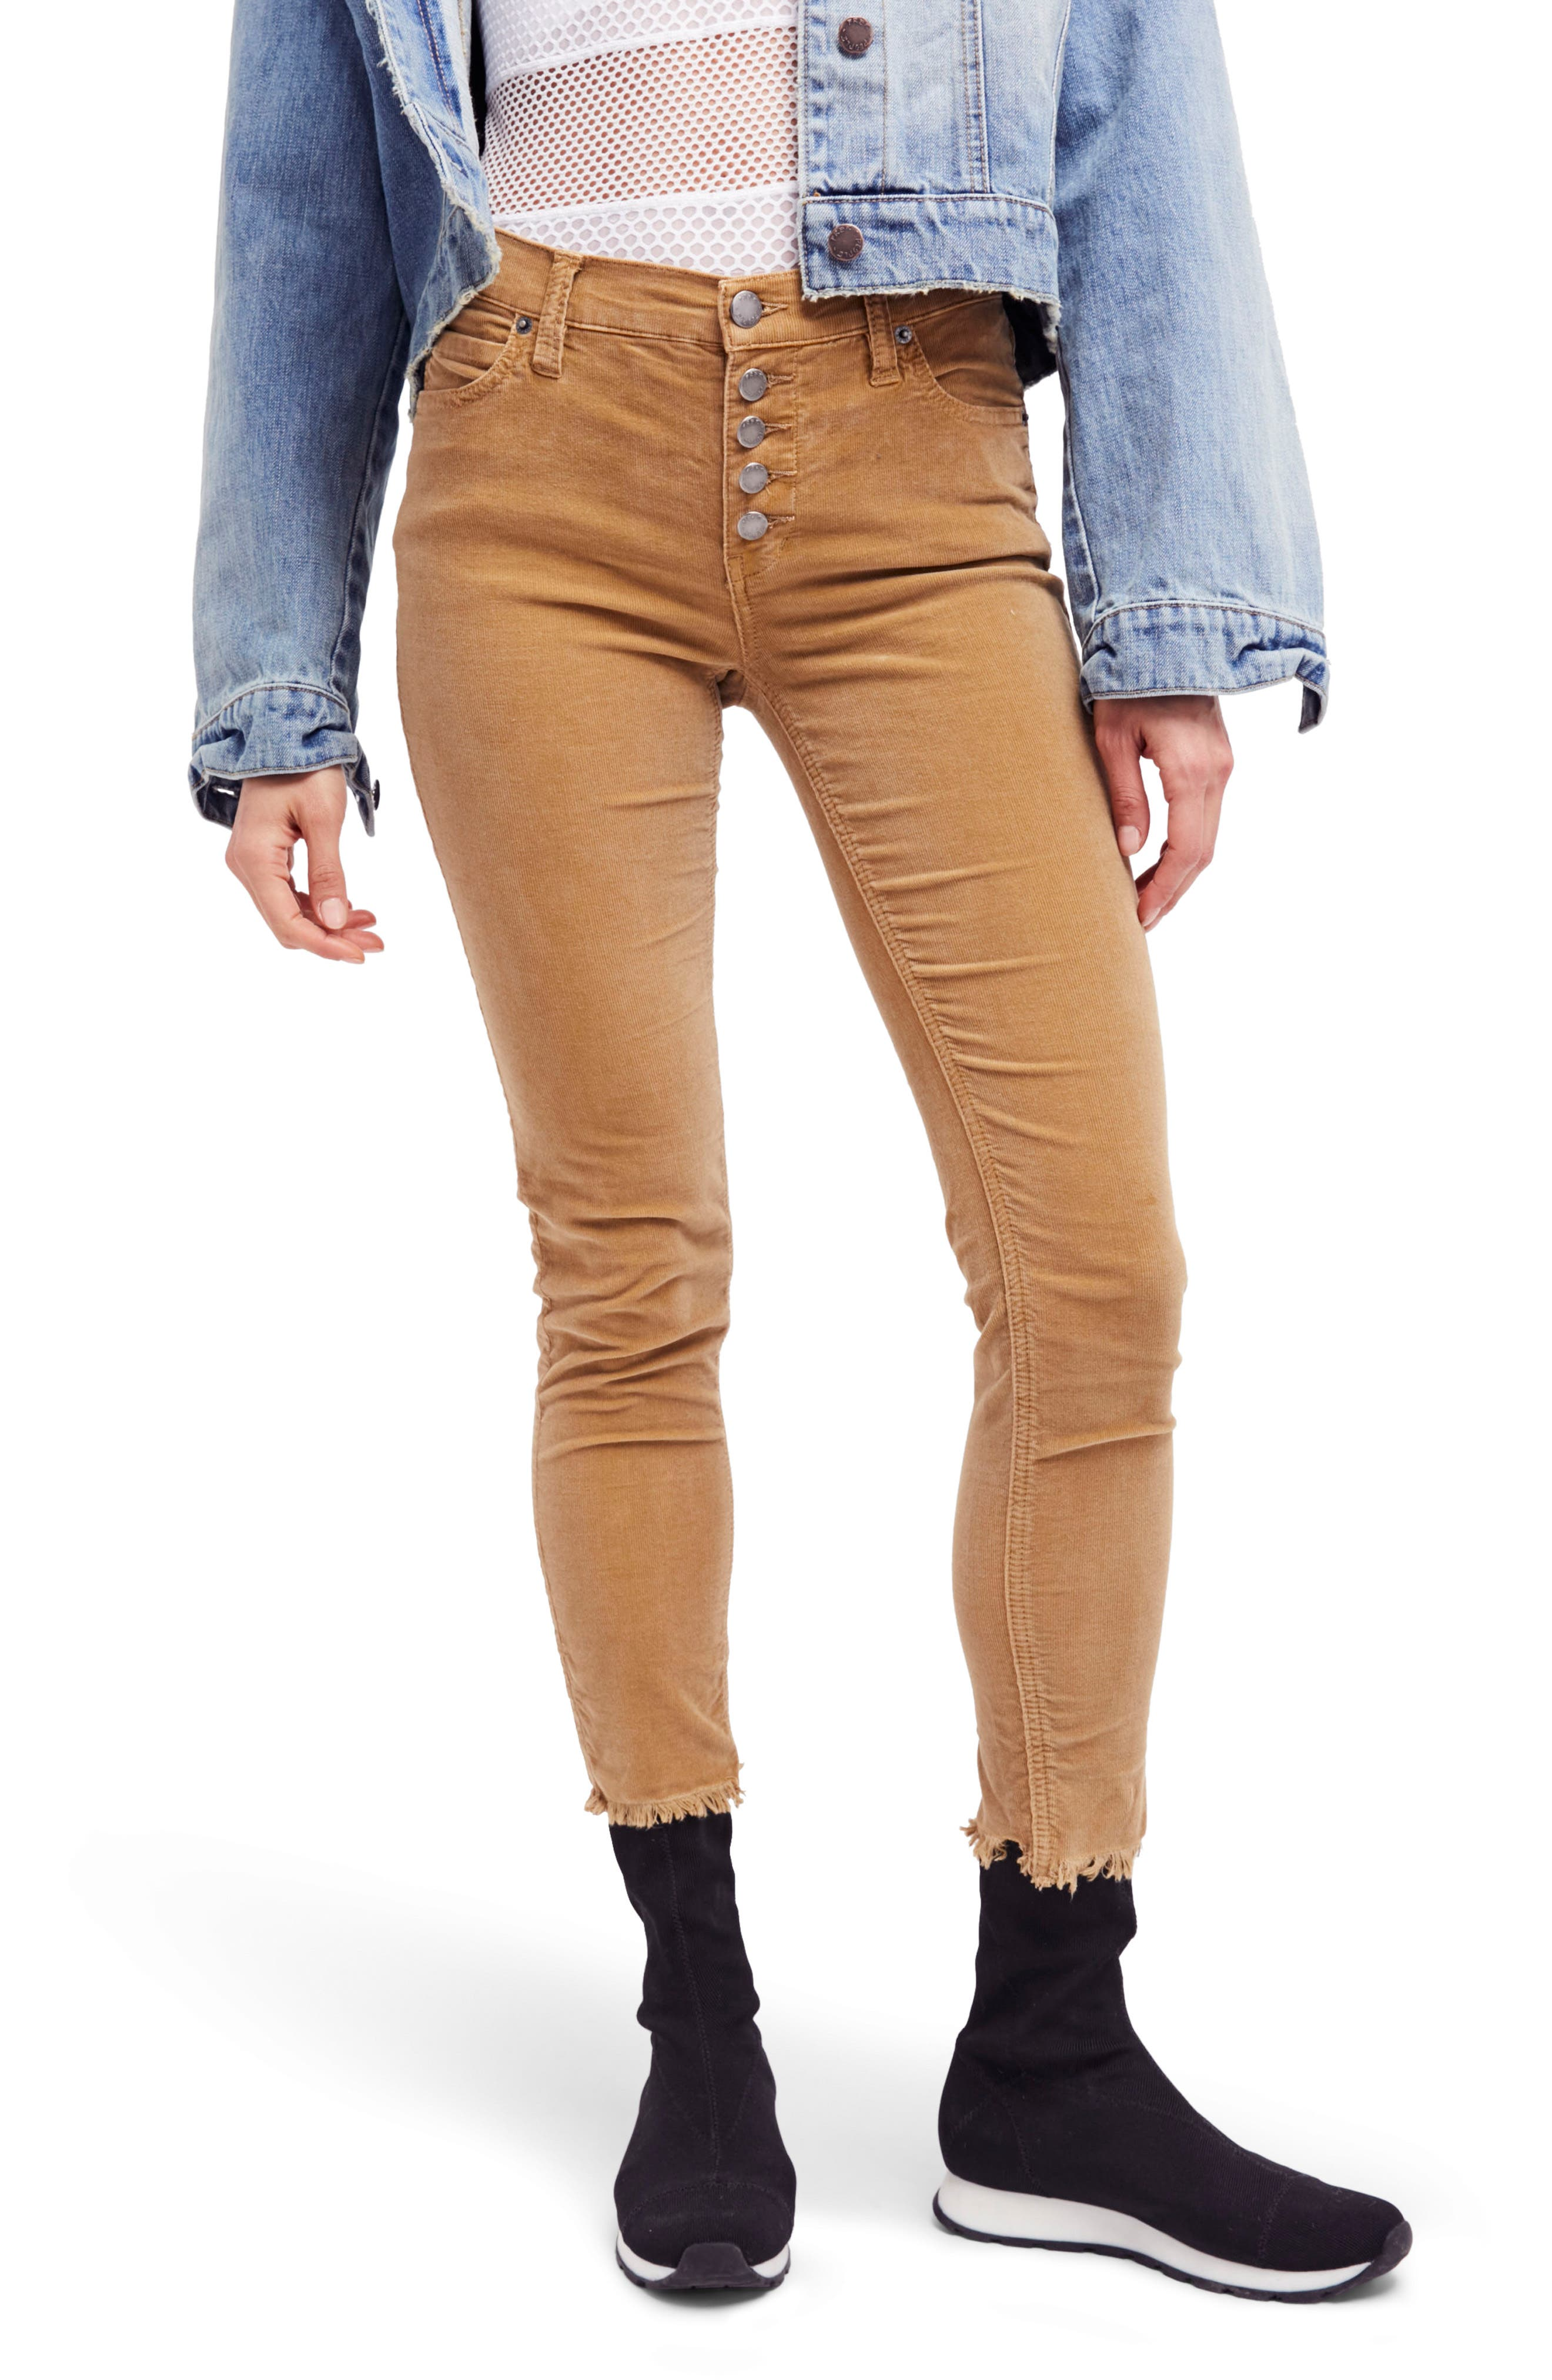 Reagan Crop Skinny Jeans,                         Main,                         color, Mustard